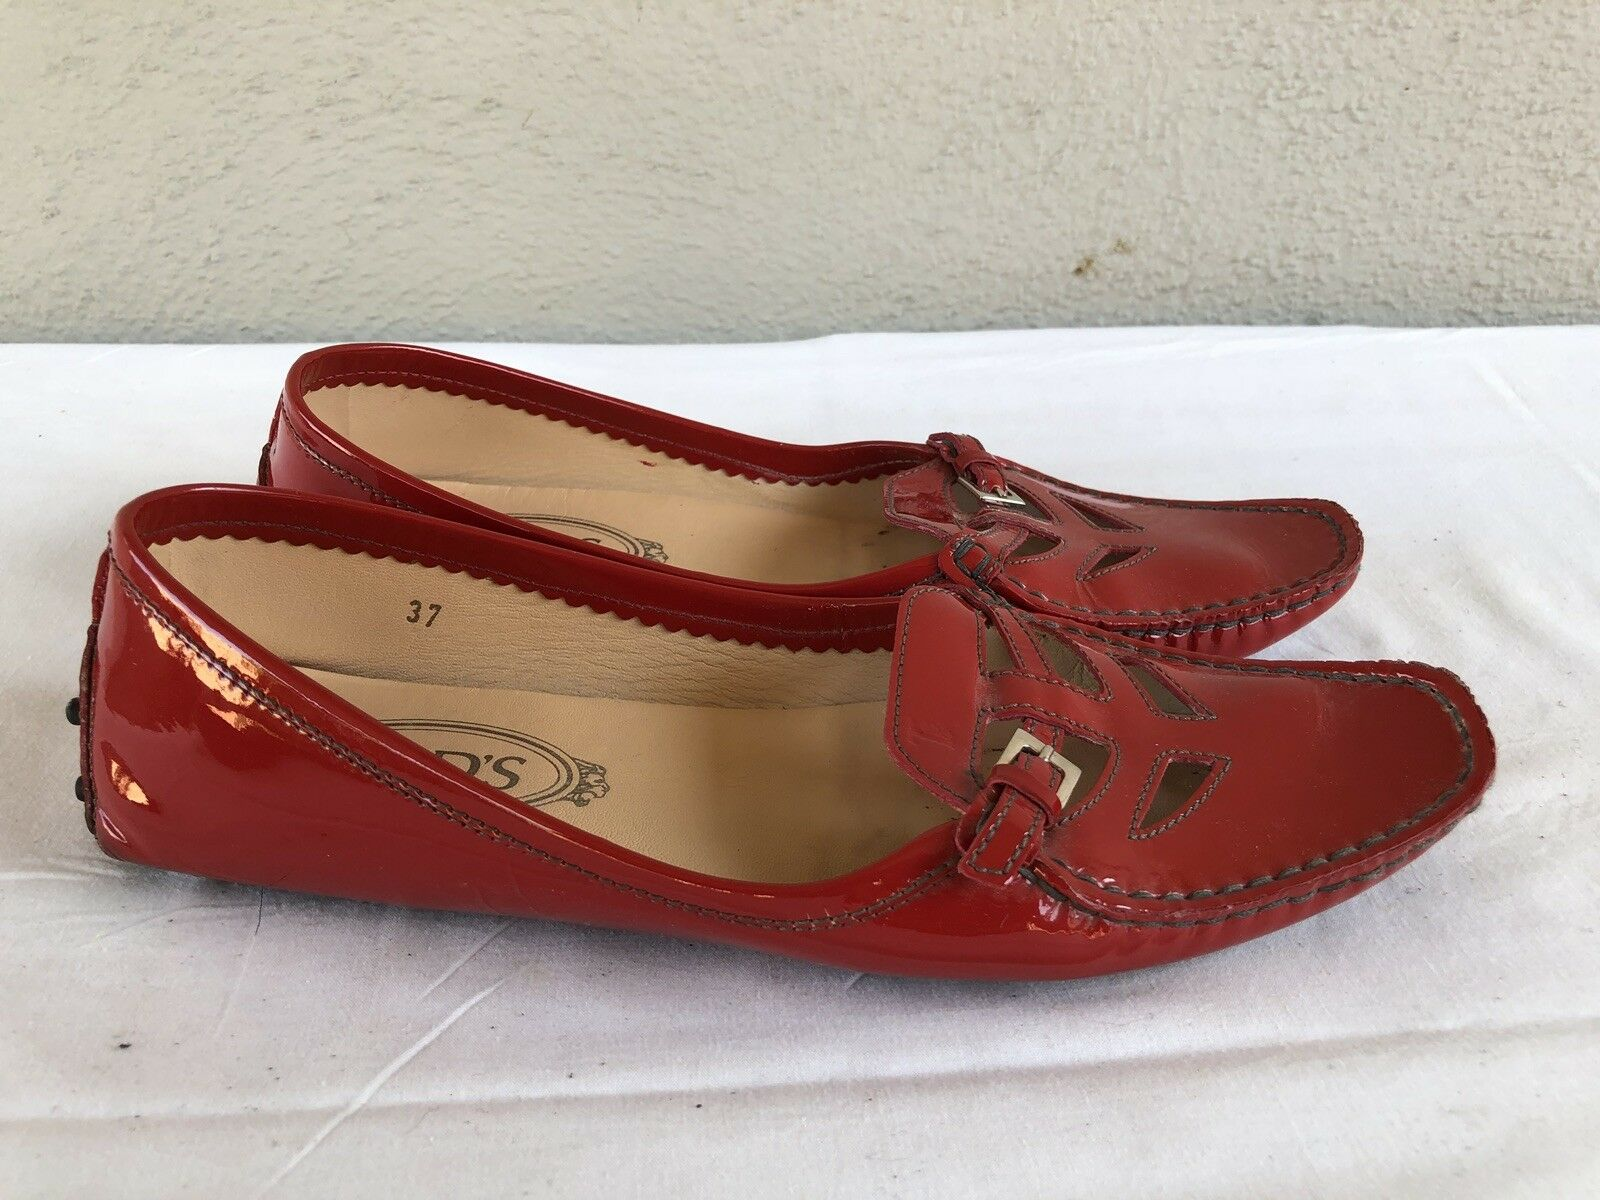 299 TOD'S 37 US 6.5 Bright rosso Patent Leather Loafer Flat Moc Slip On scarpe A